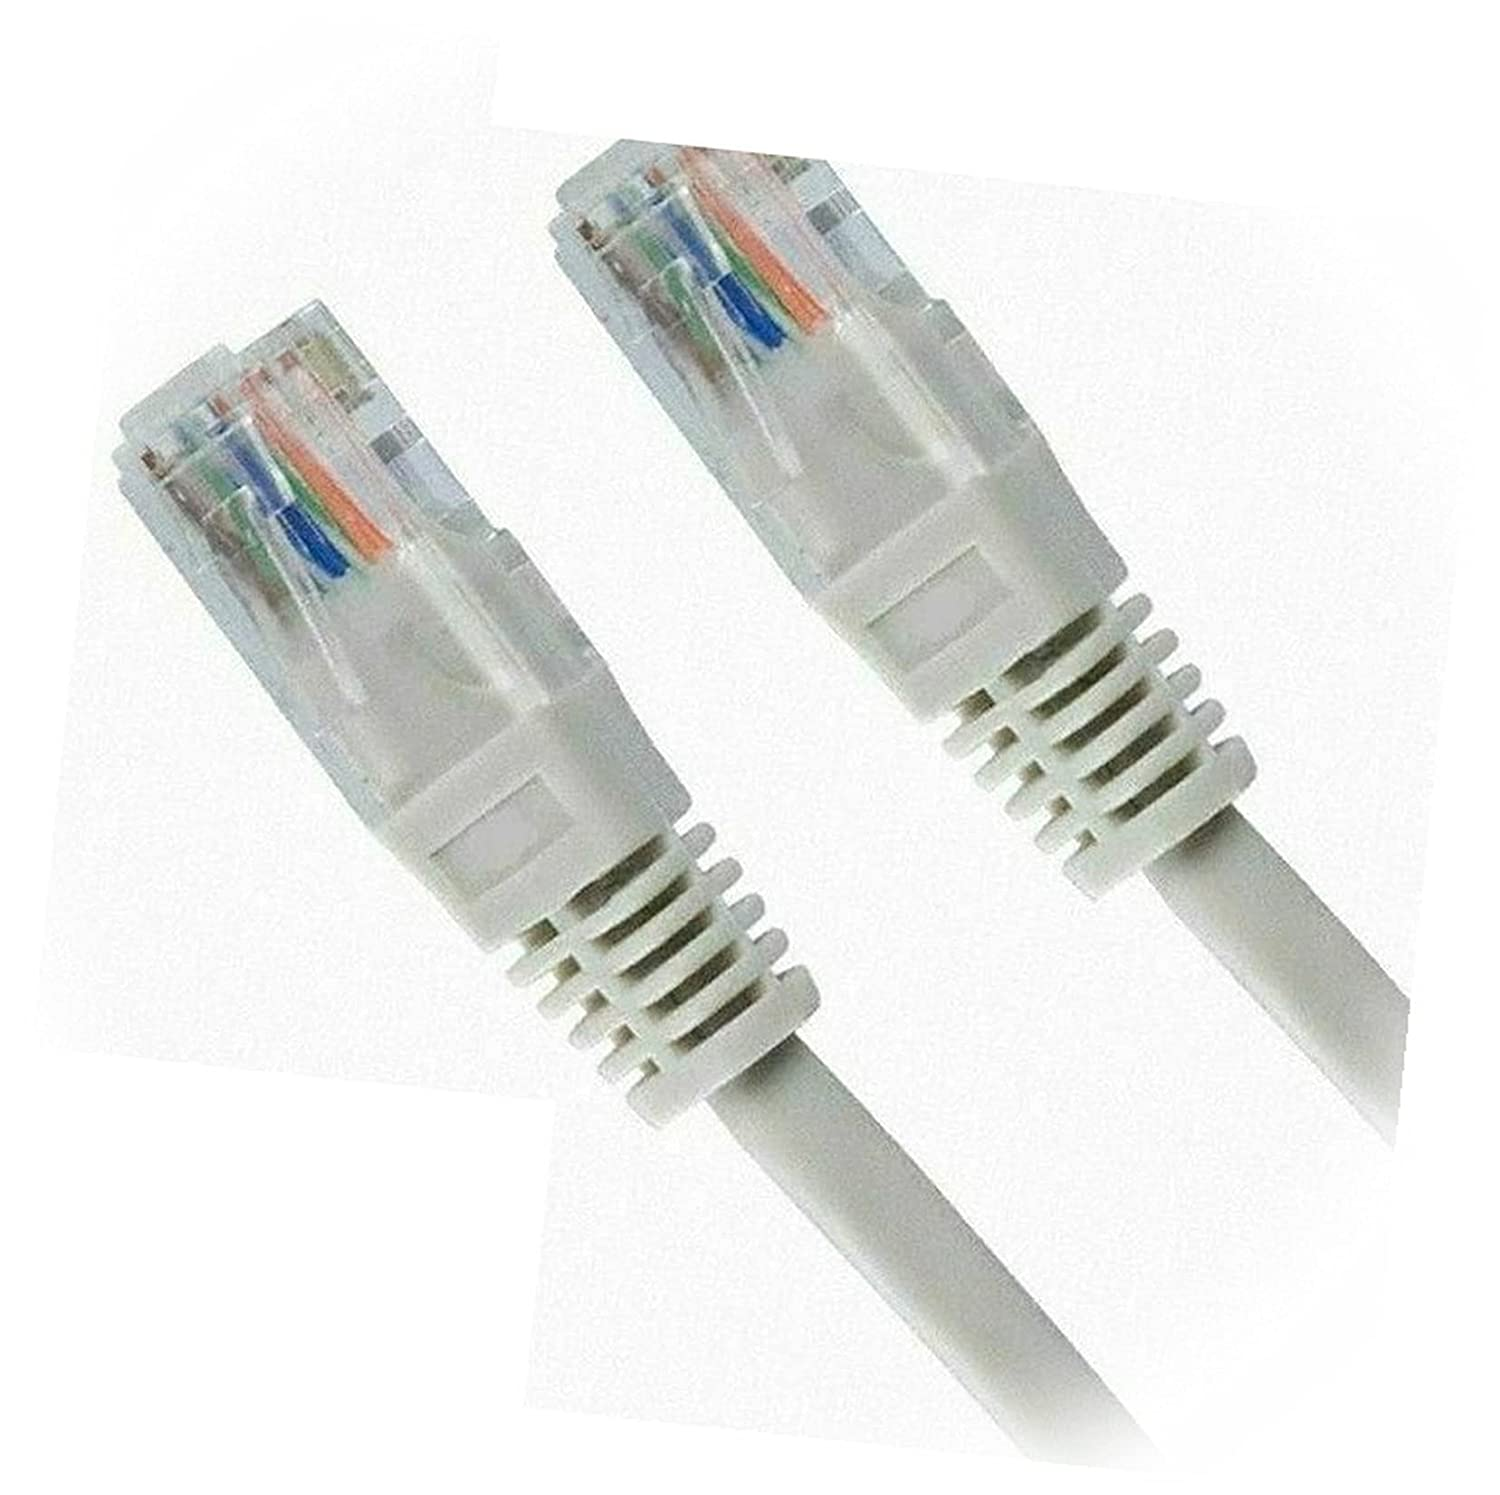 New 10 Pack Lot - 5ft Ethernet Network LAN Co Cable Patch Cheap mail order Oakland Mall sales Router